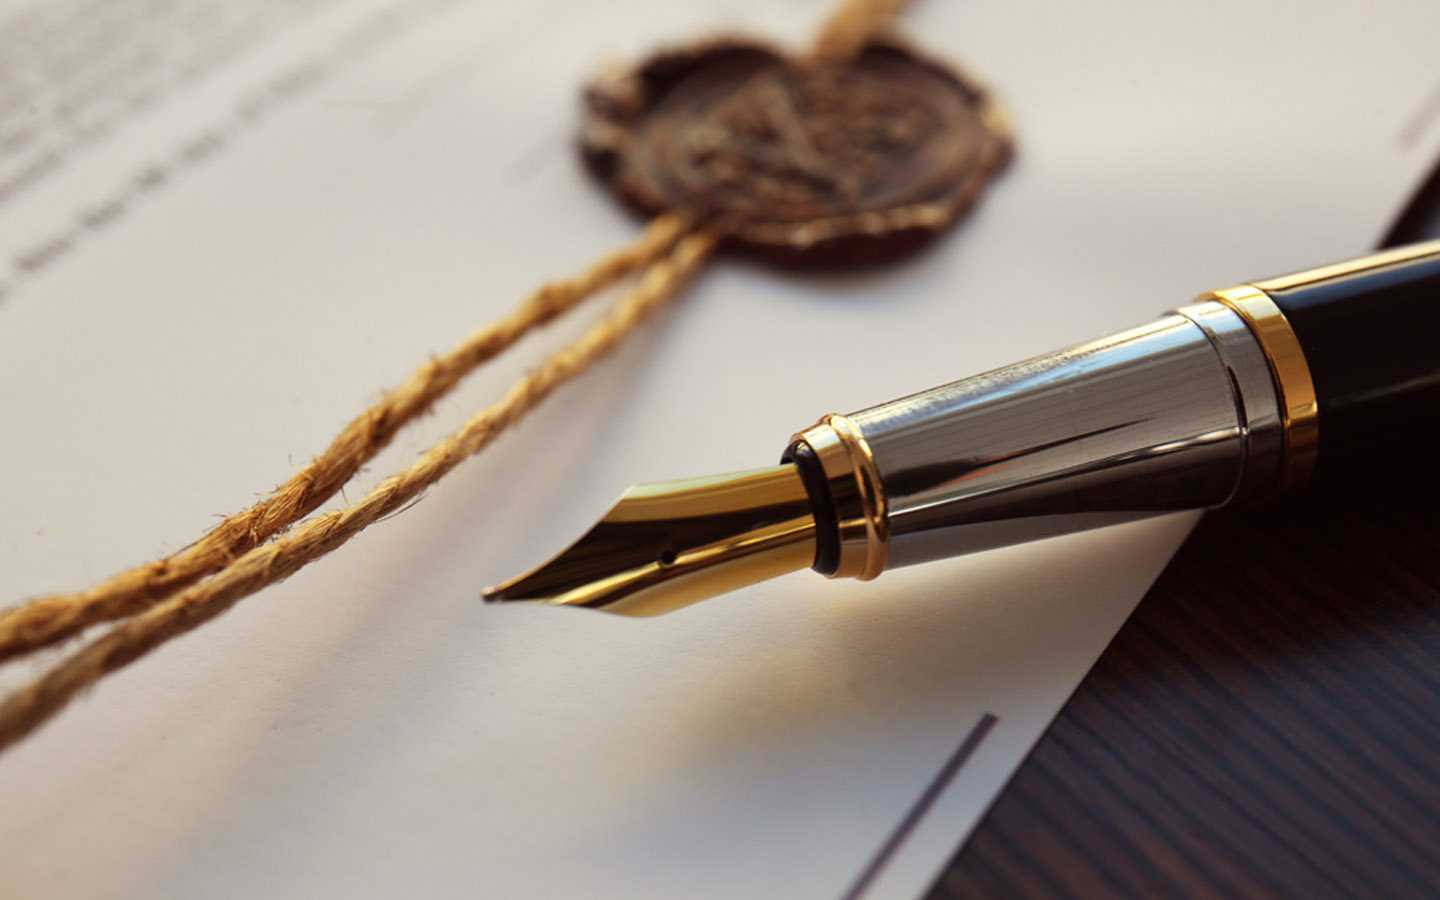 pen and a seal on a document